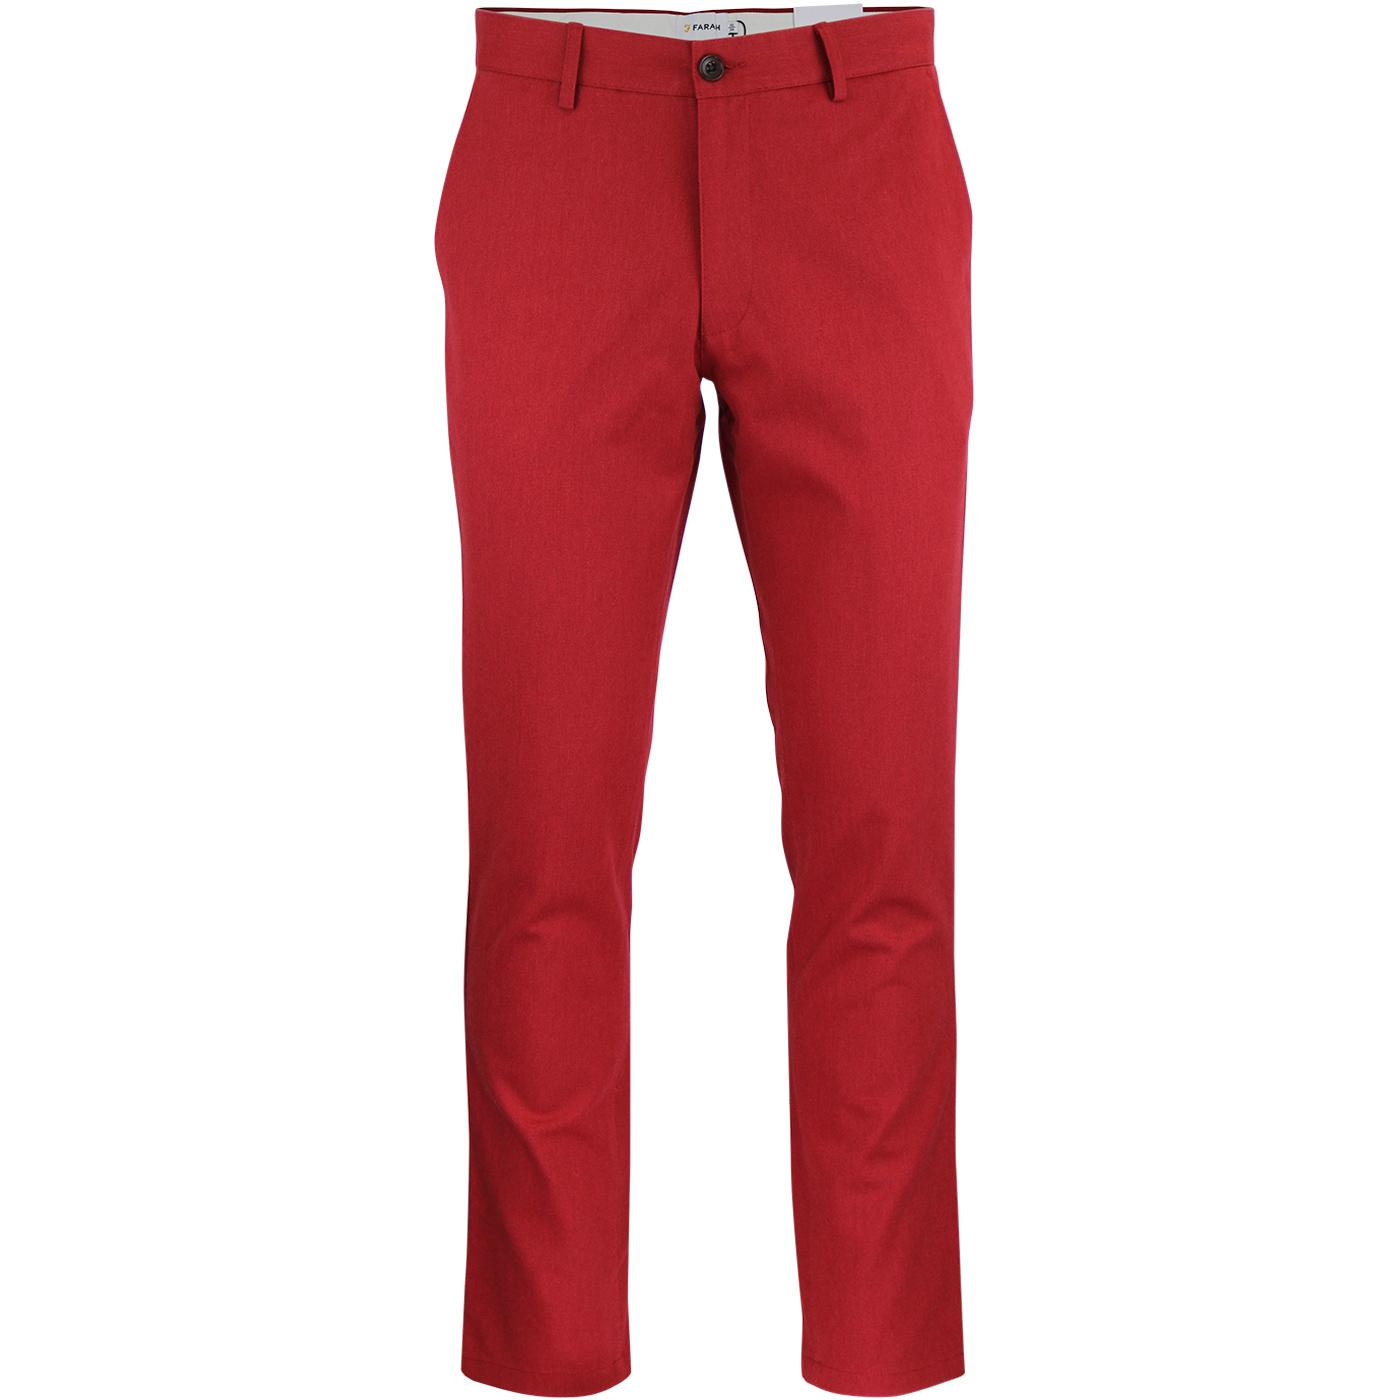 Elm FARAH Retro Mod Slim Hopsack Trousers (Fire)